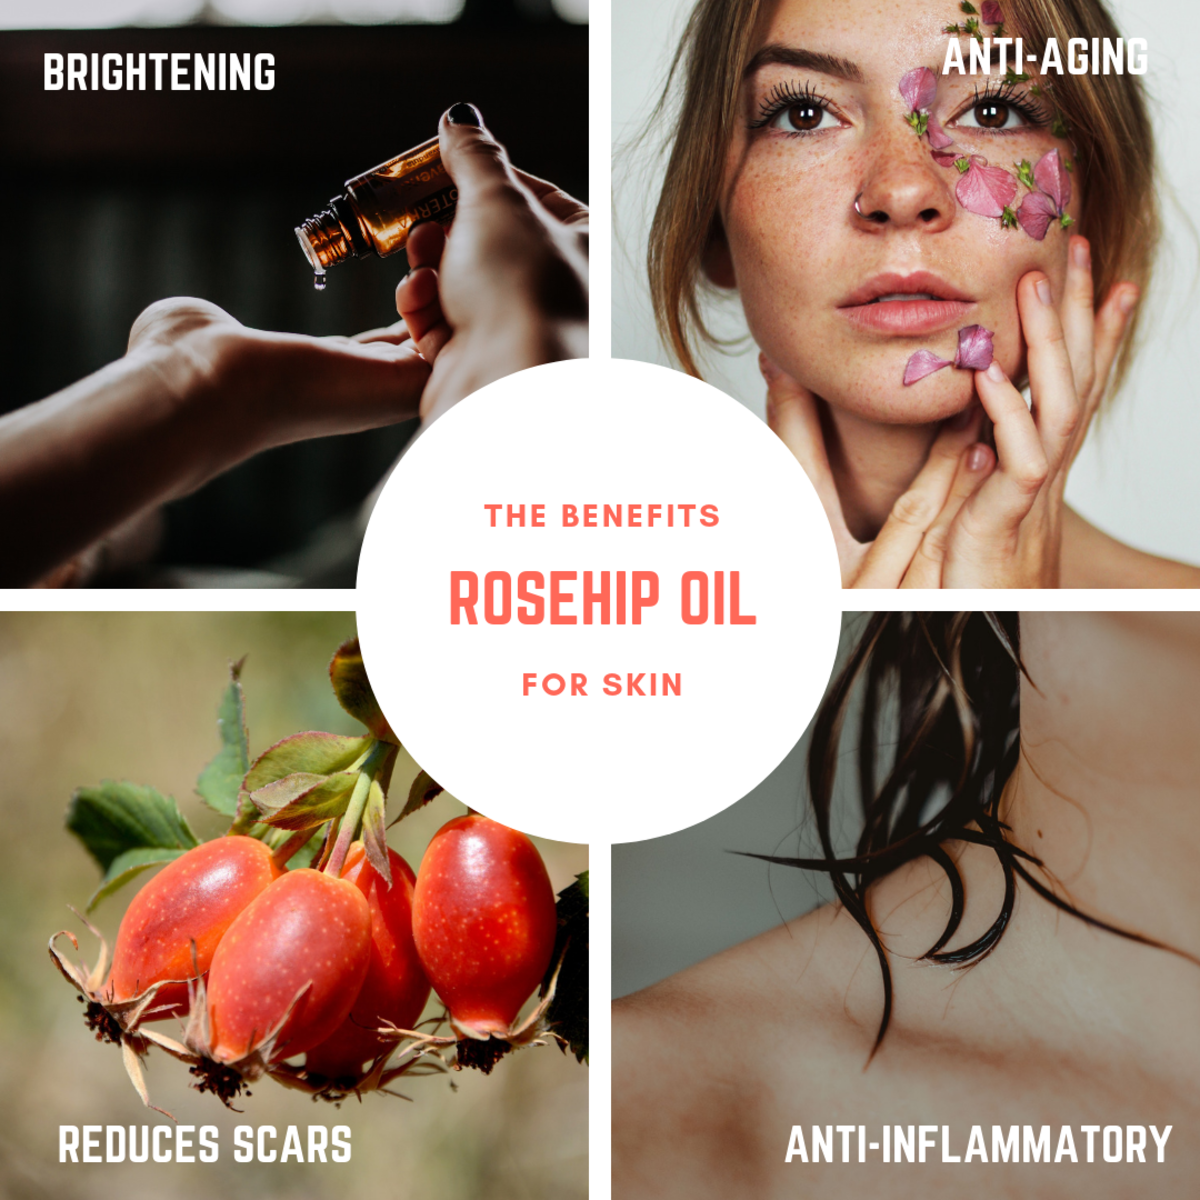 Rosehip oil offers many benefits and is all-natural.